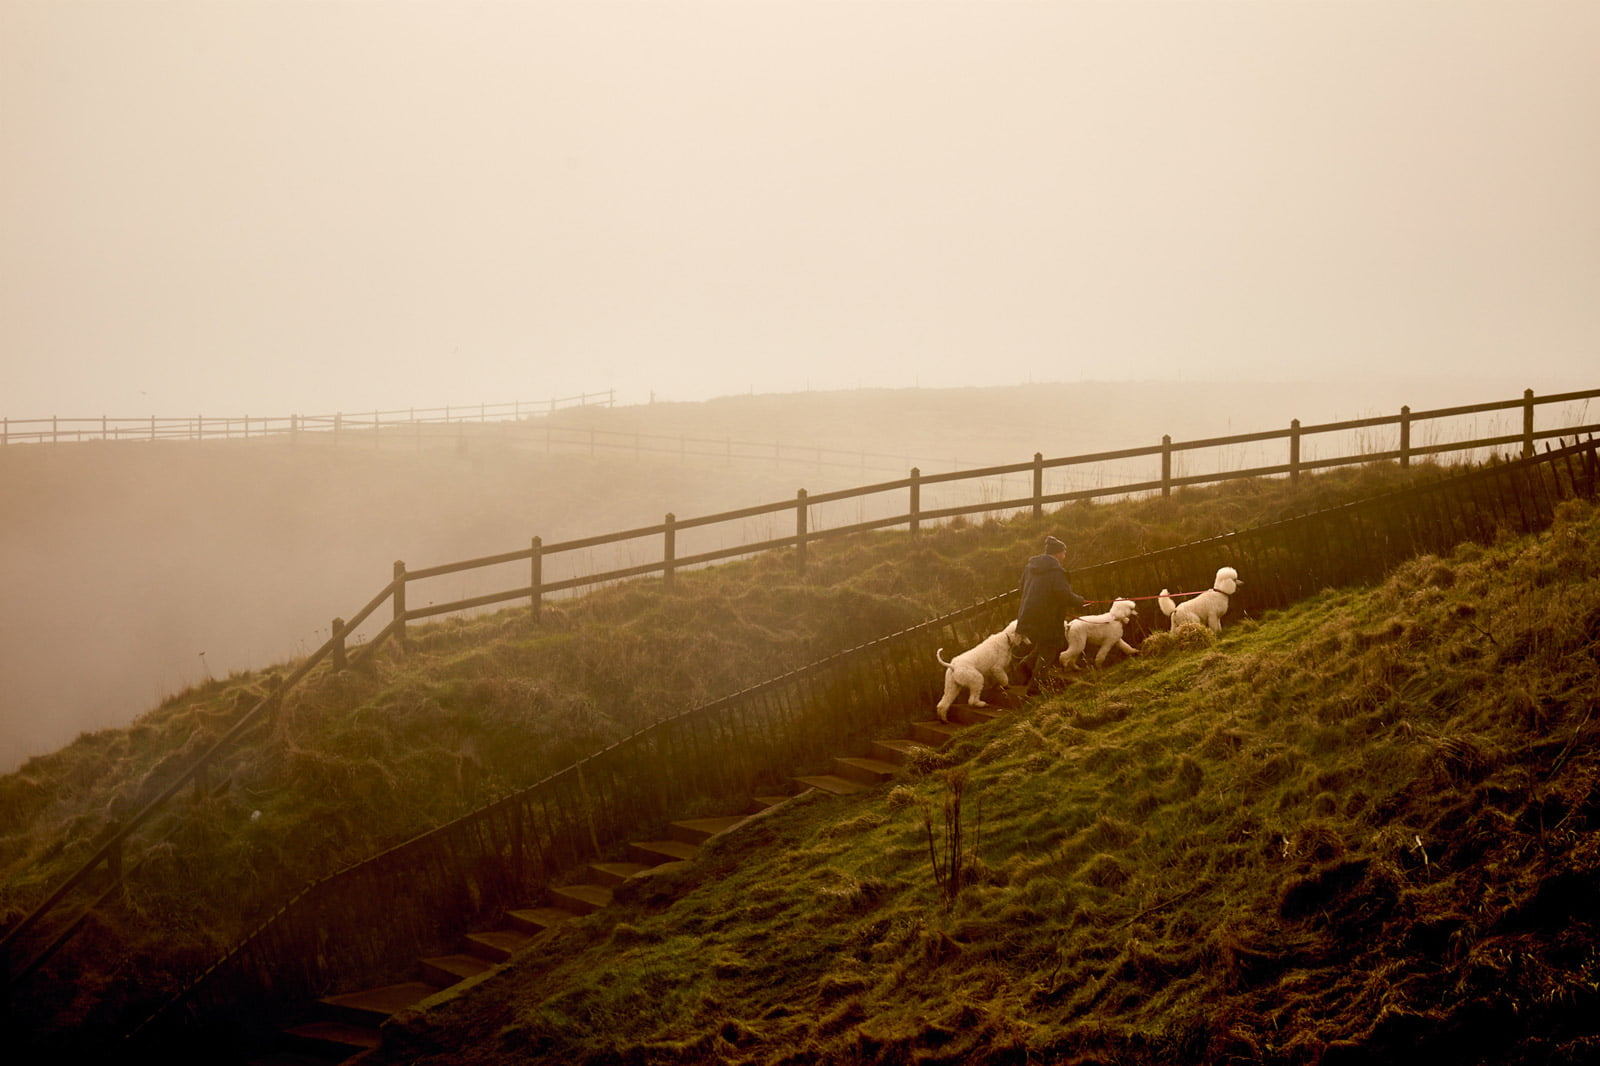 Three Dogs - Landscape Photographer Faceiro//Chris Underwood